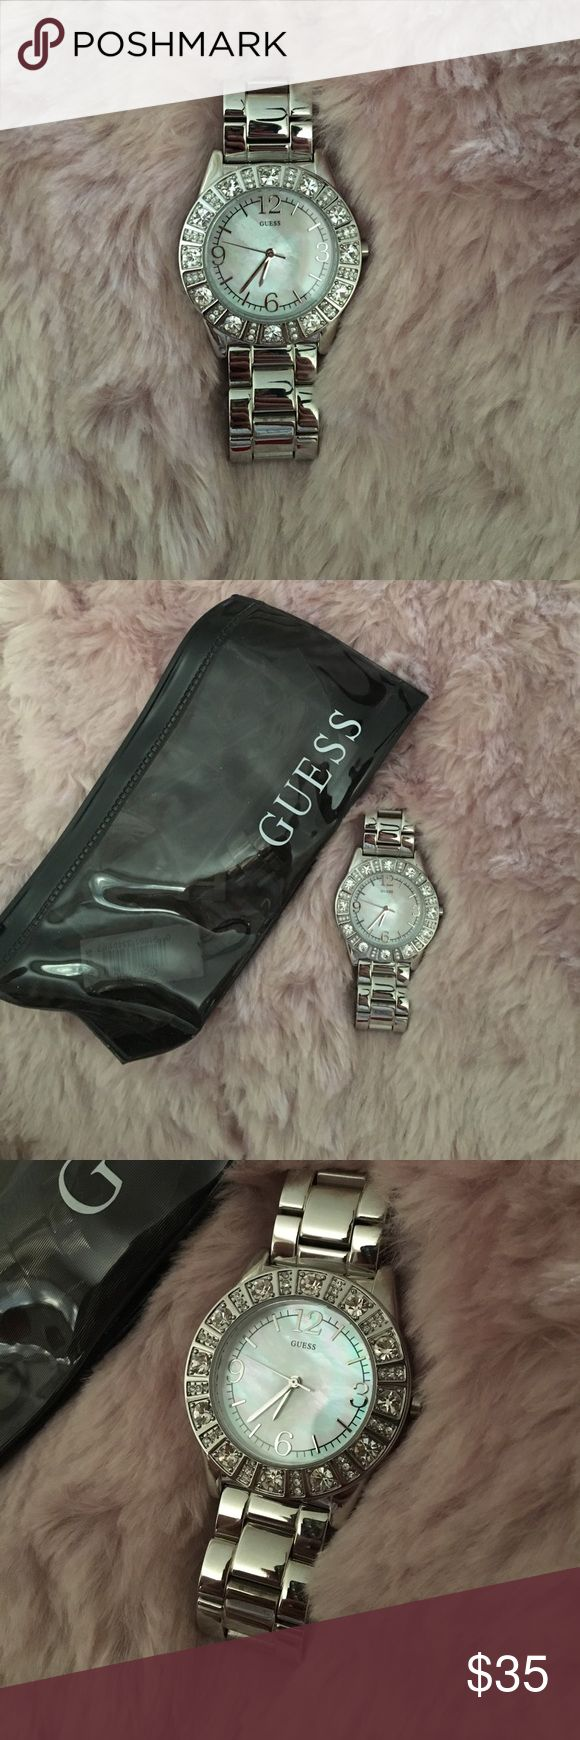 Mother of pearl guess watch Mother of pearl GUESS watch, comes with original bag and extra links to resize. Worn once. Guess Jewelry